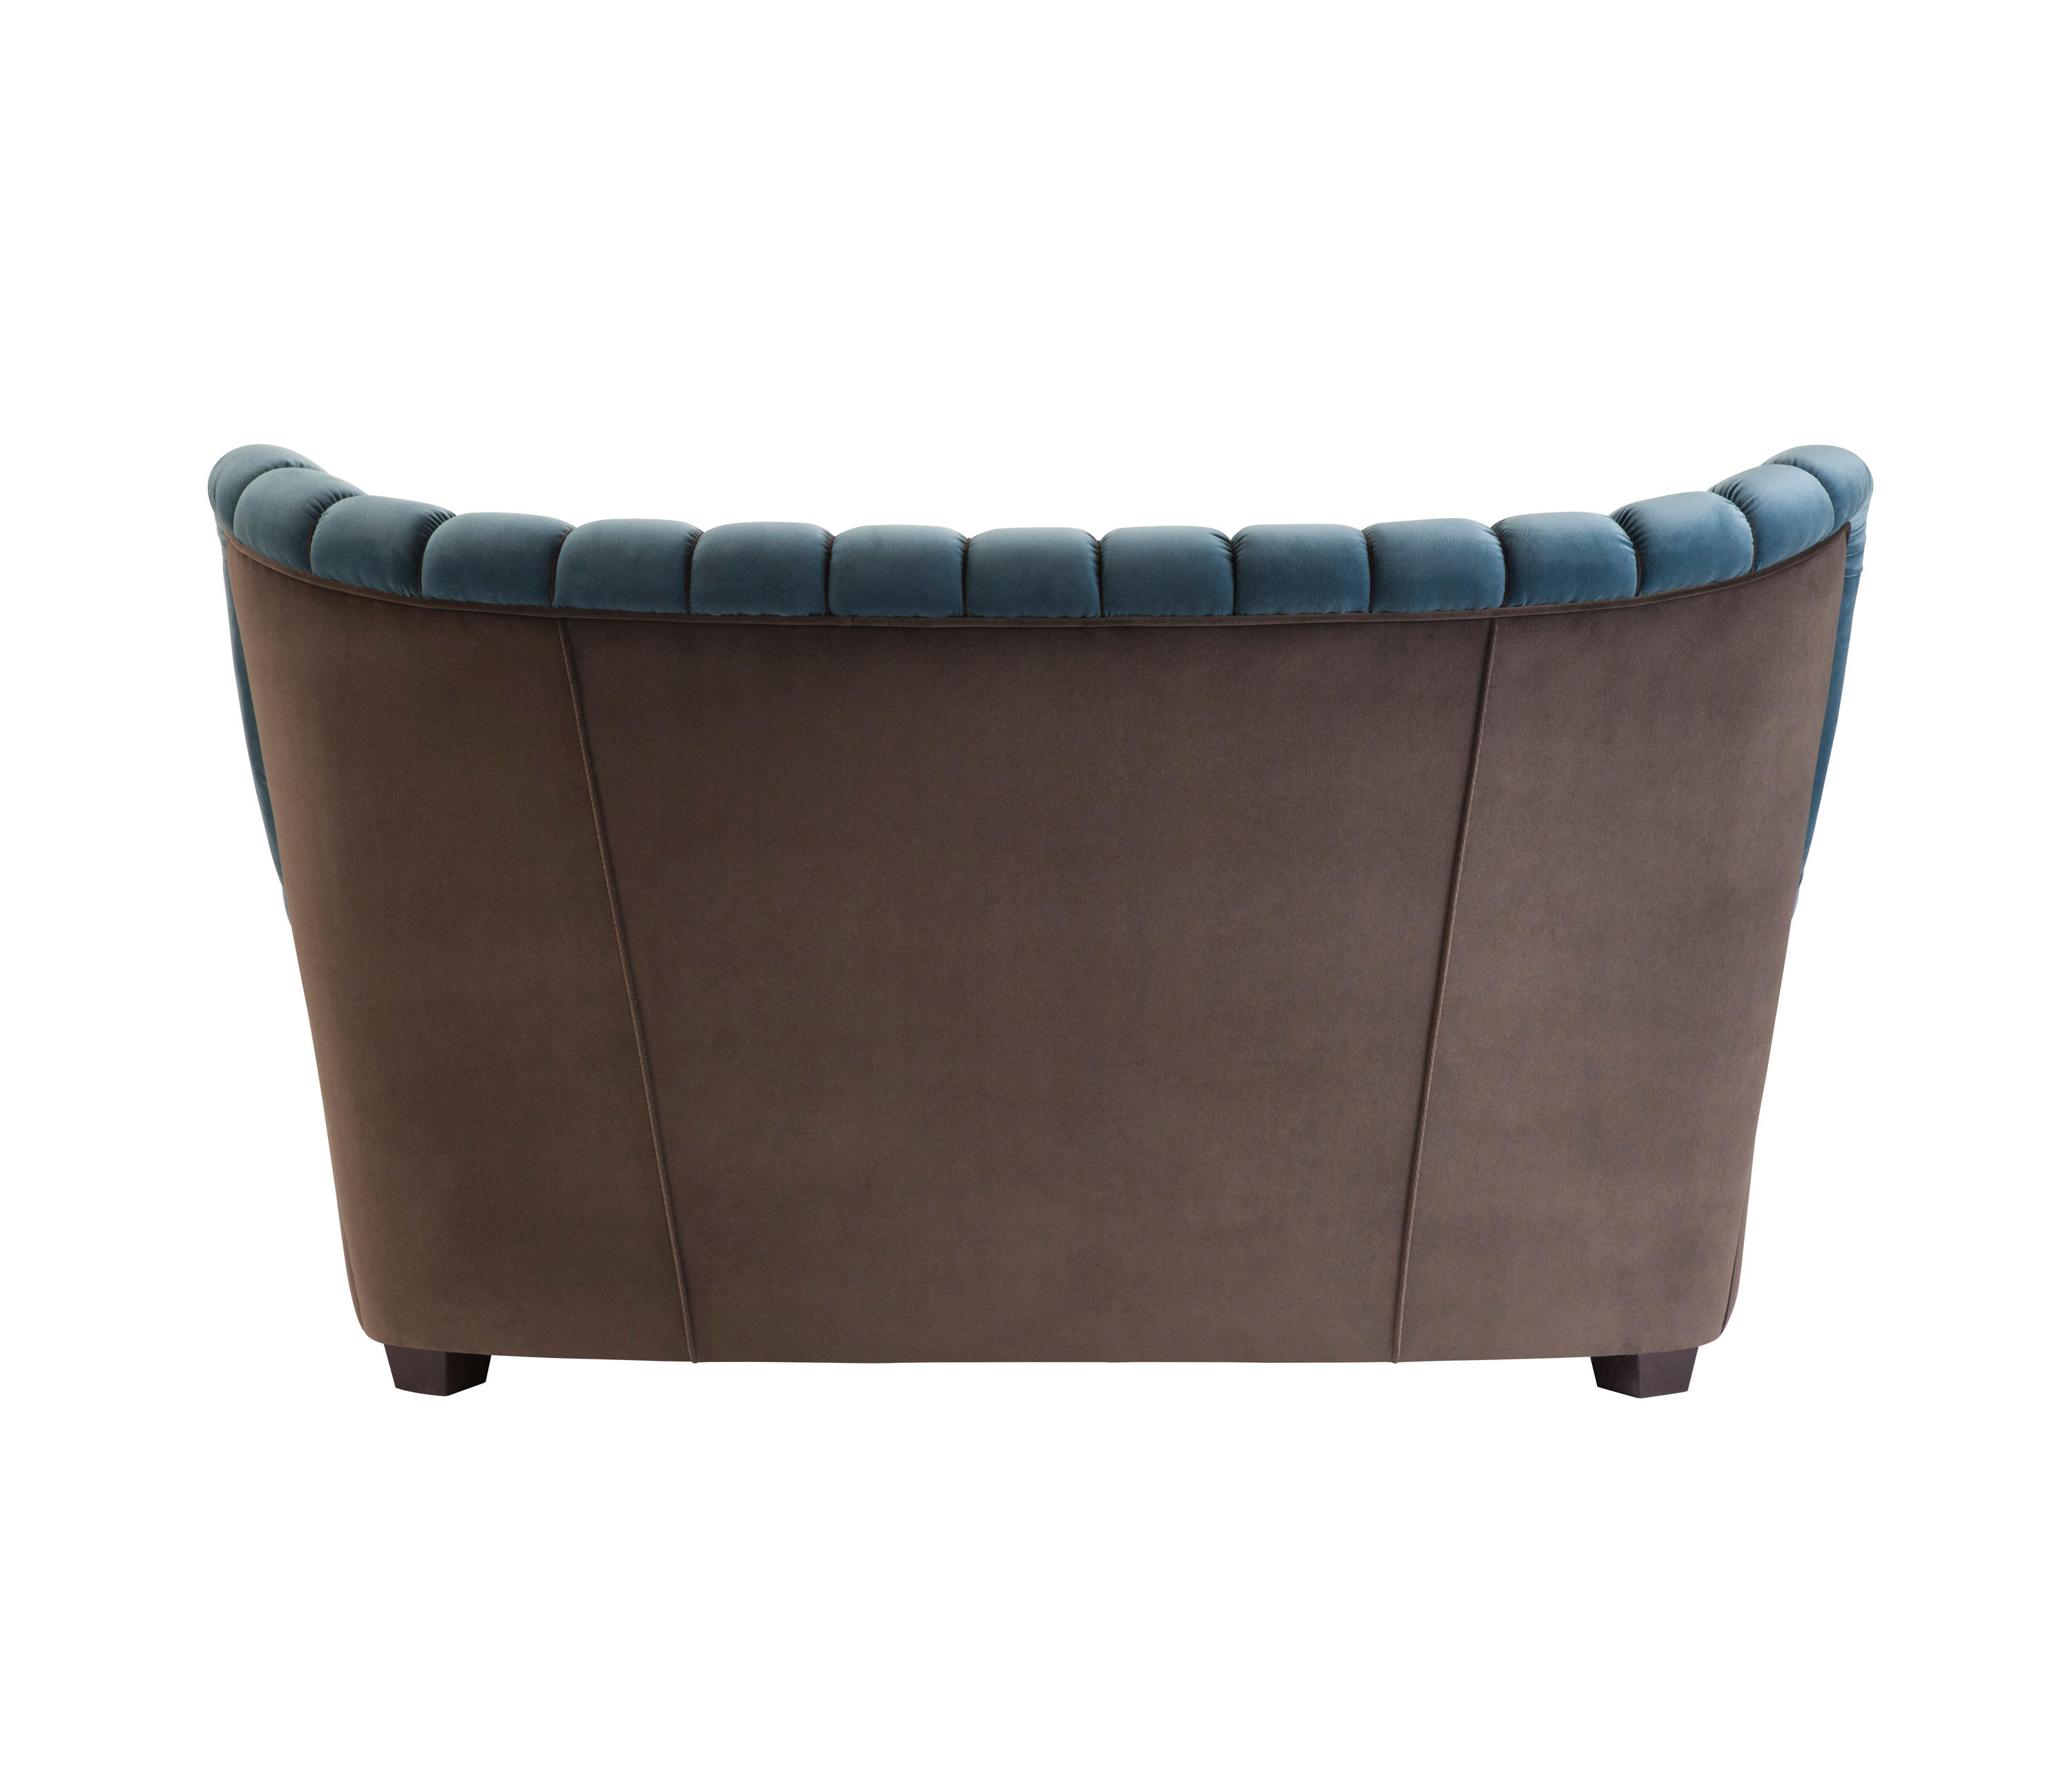 ... Zarina Sofa By Adele C | Lounge Sofas ...